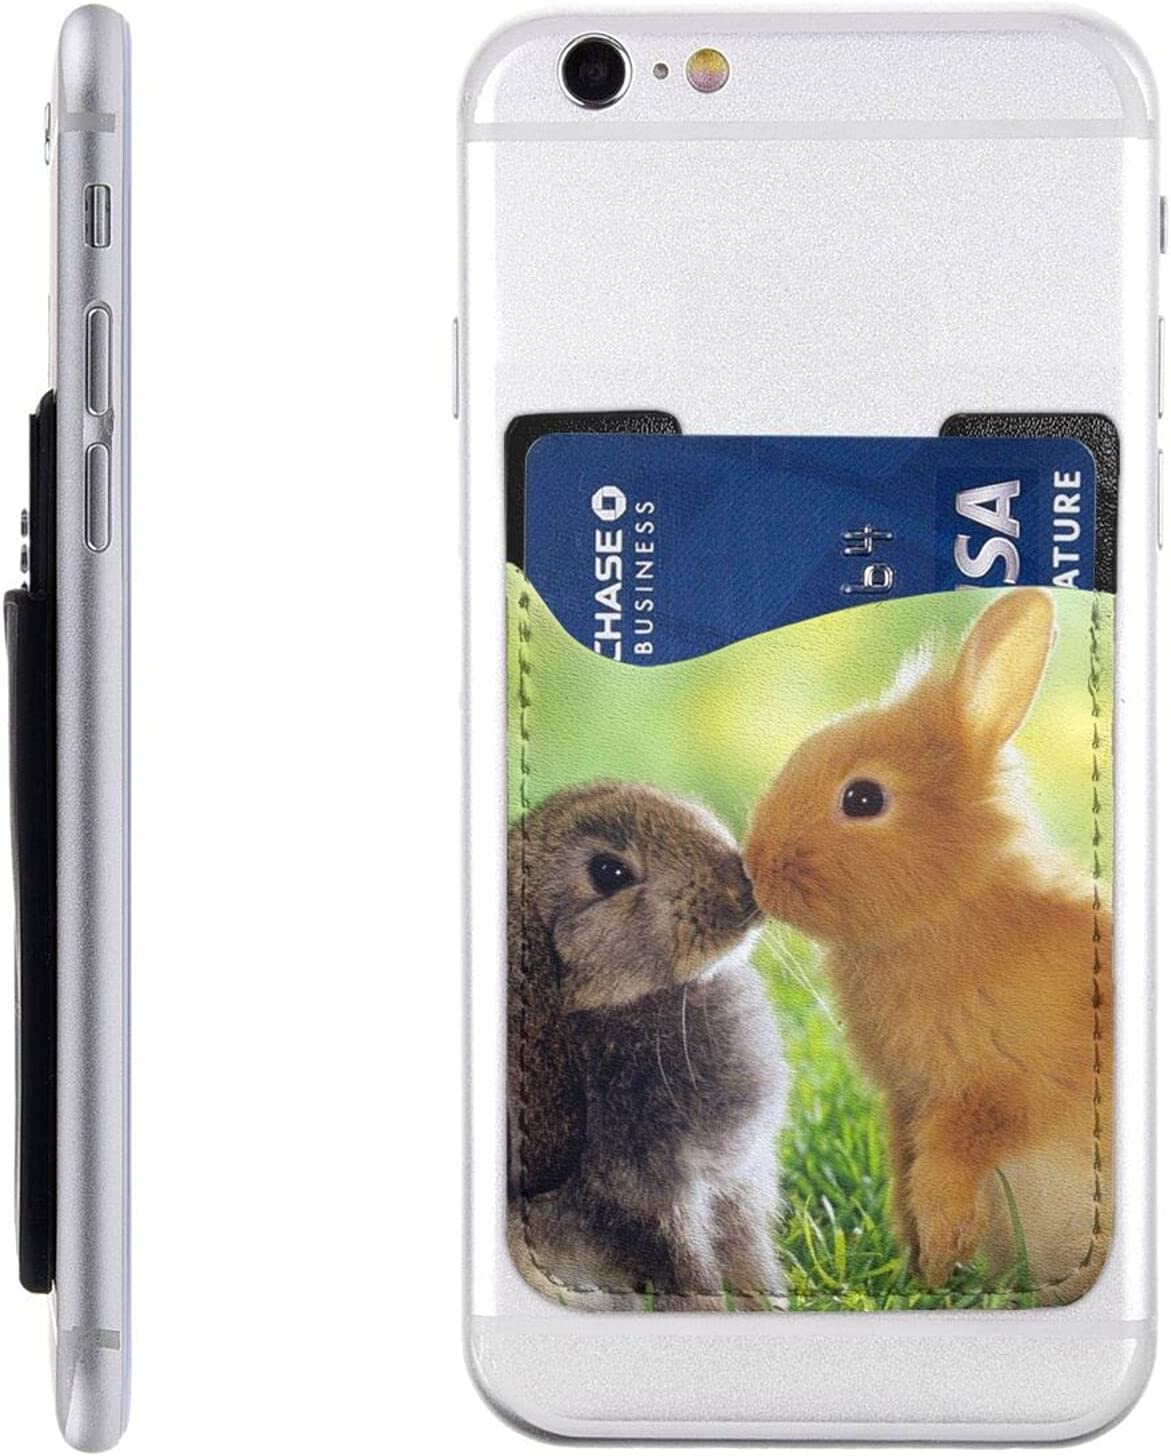 Rabbit Love Max 82% OFF Phone Card Holder Wallet Cell On Stick Special sale item Sl